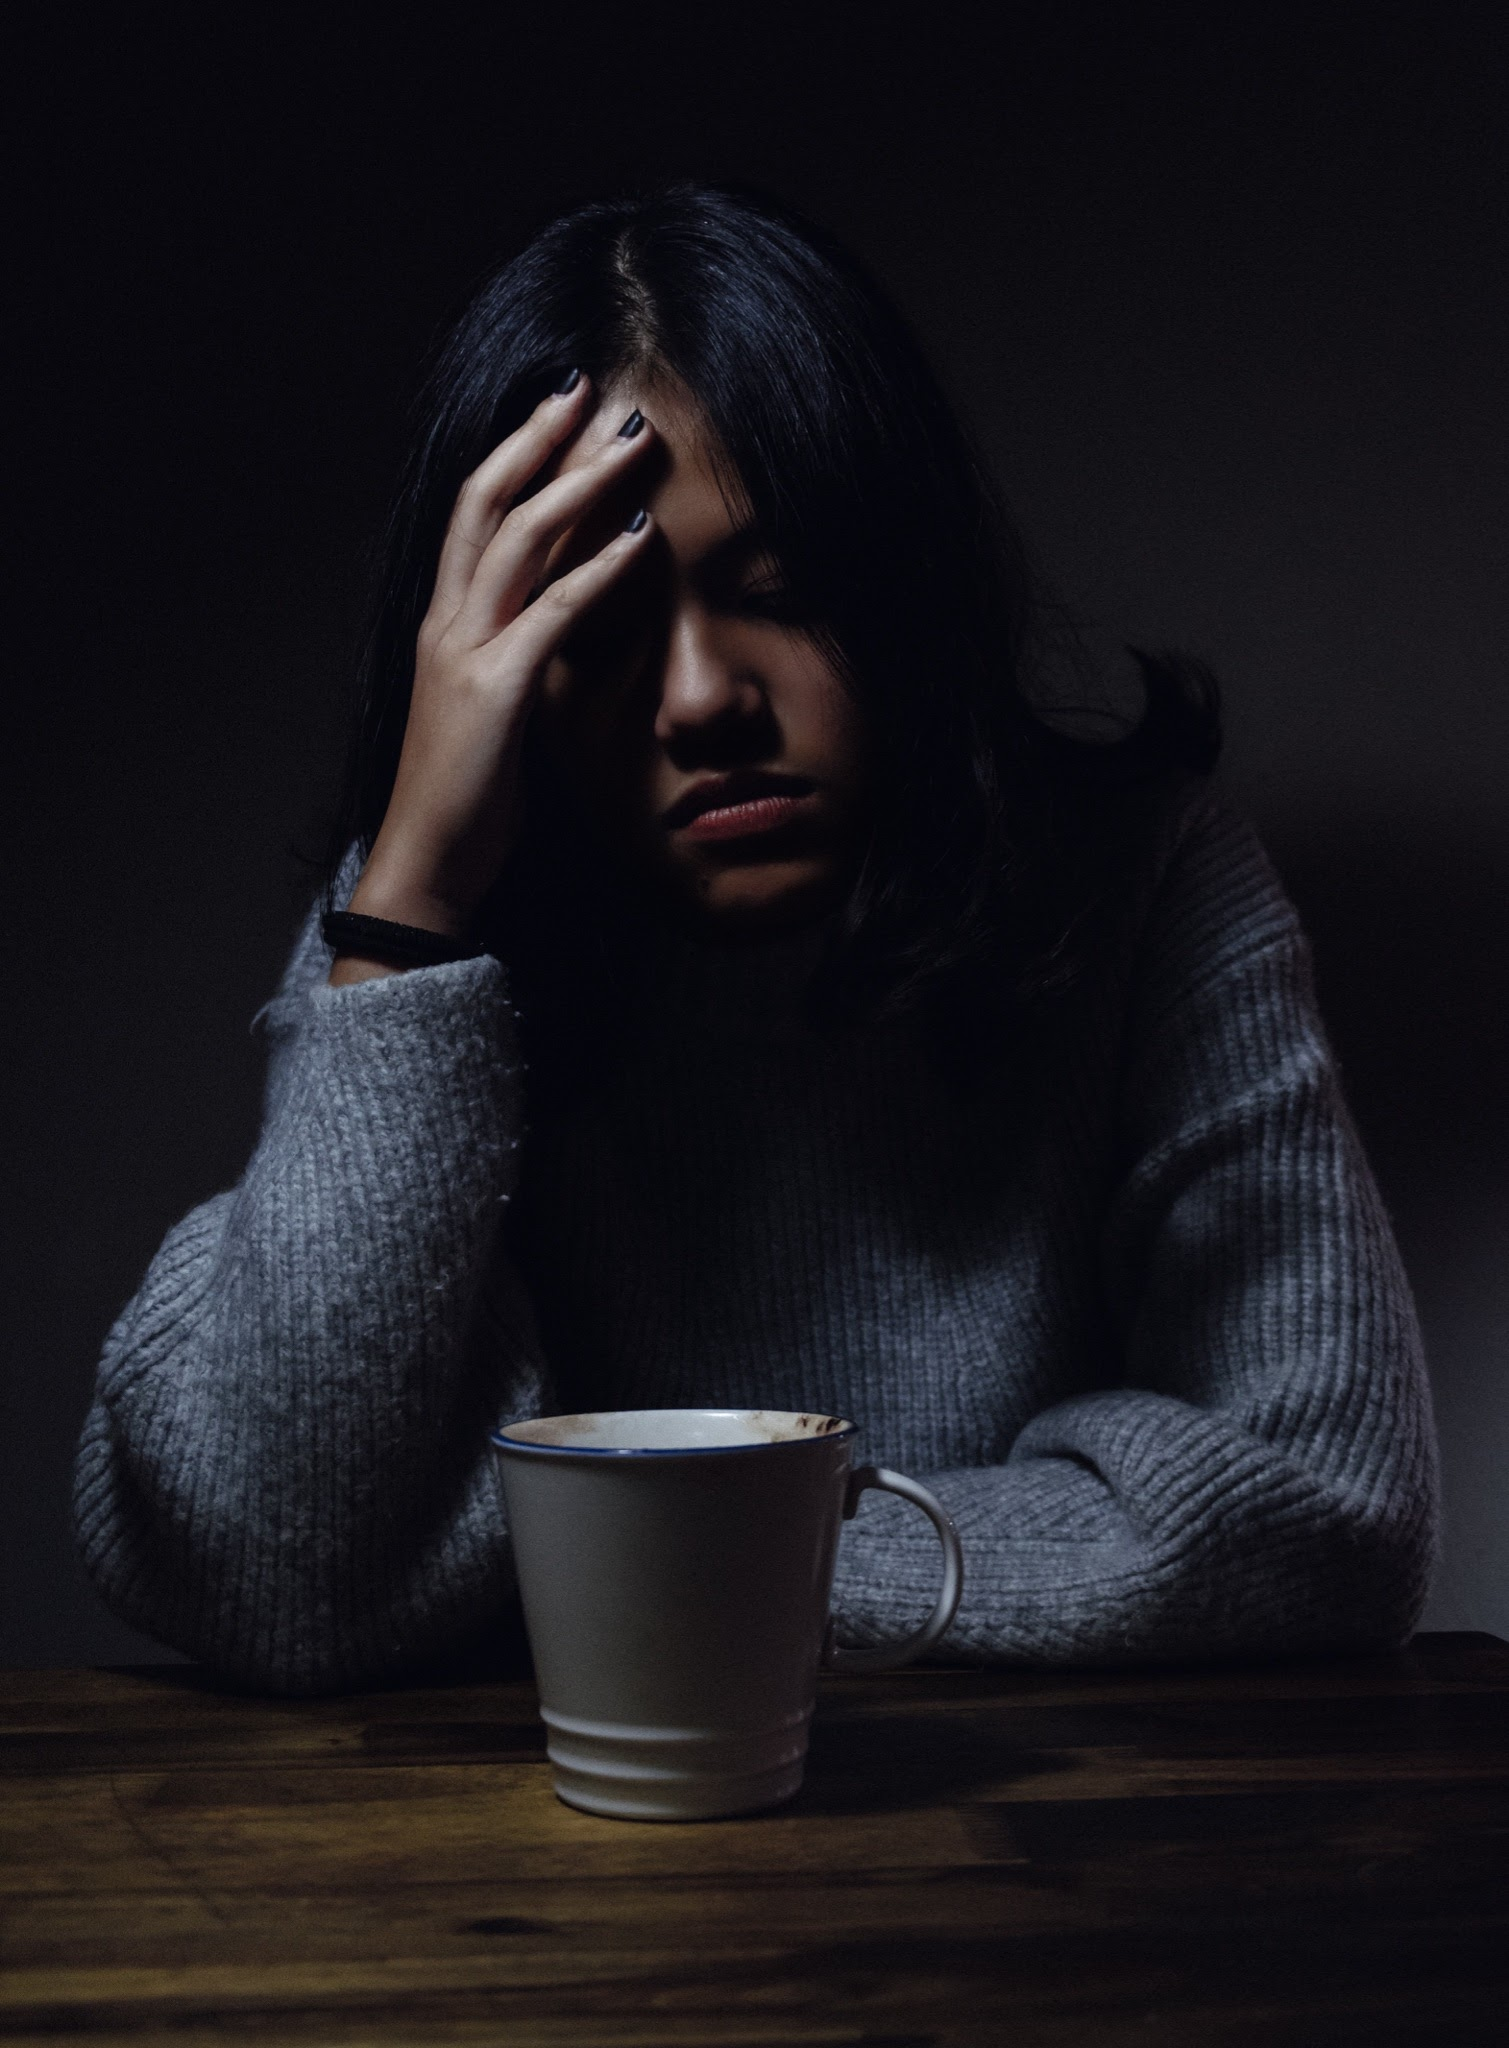 Stressed women leaning over coffee cup